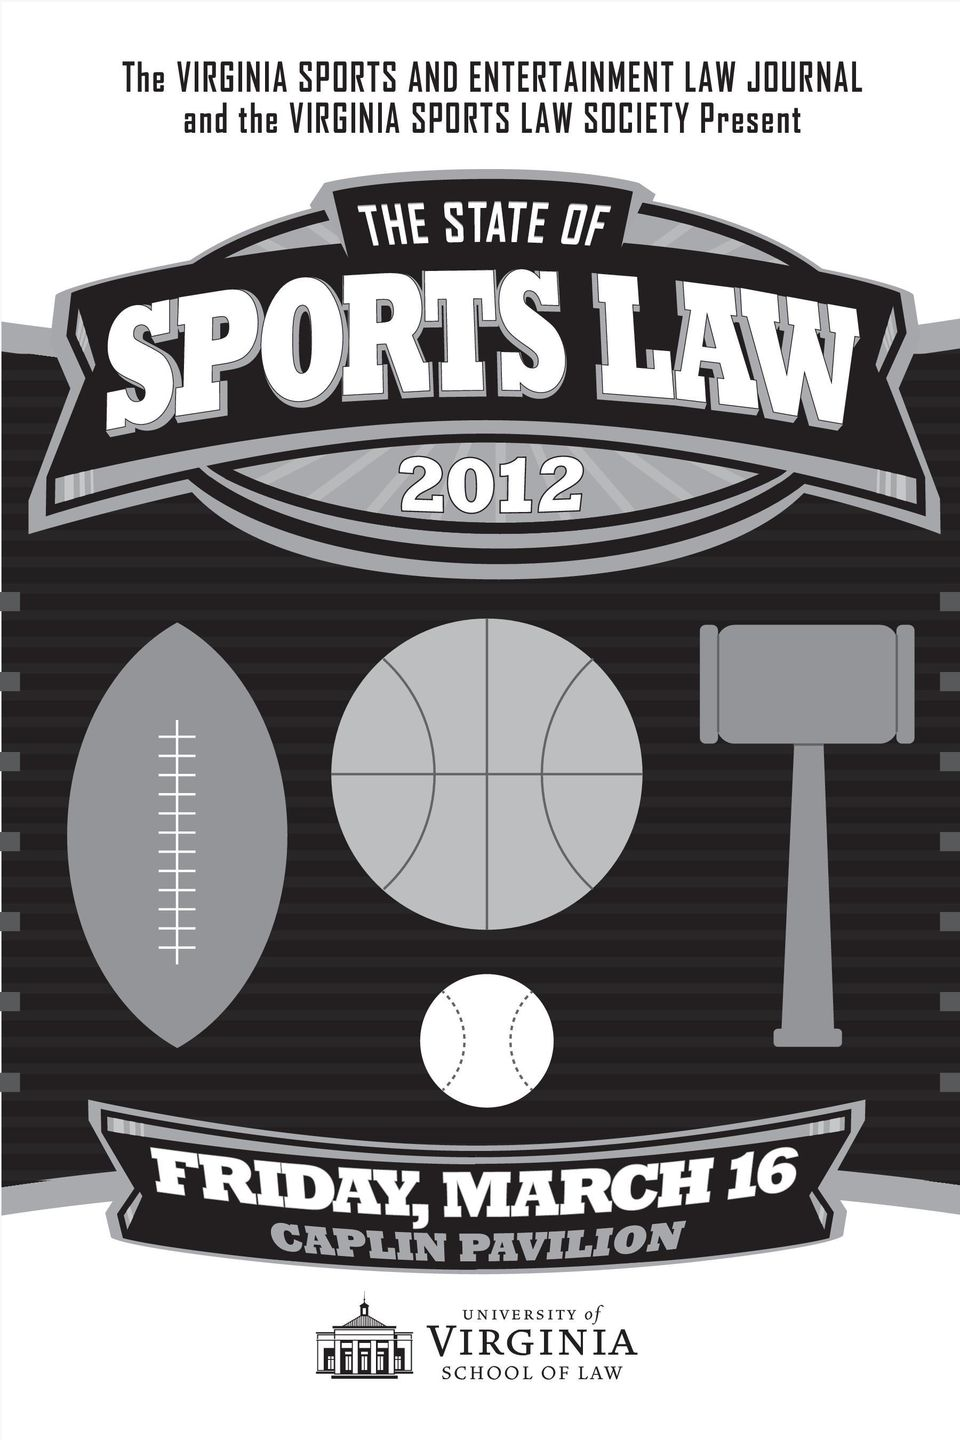 the VIRGINIA SPORTS LAW SOCIETY